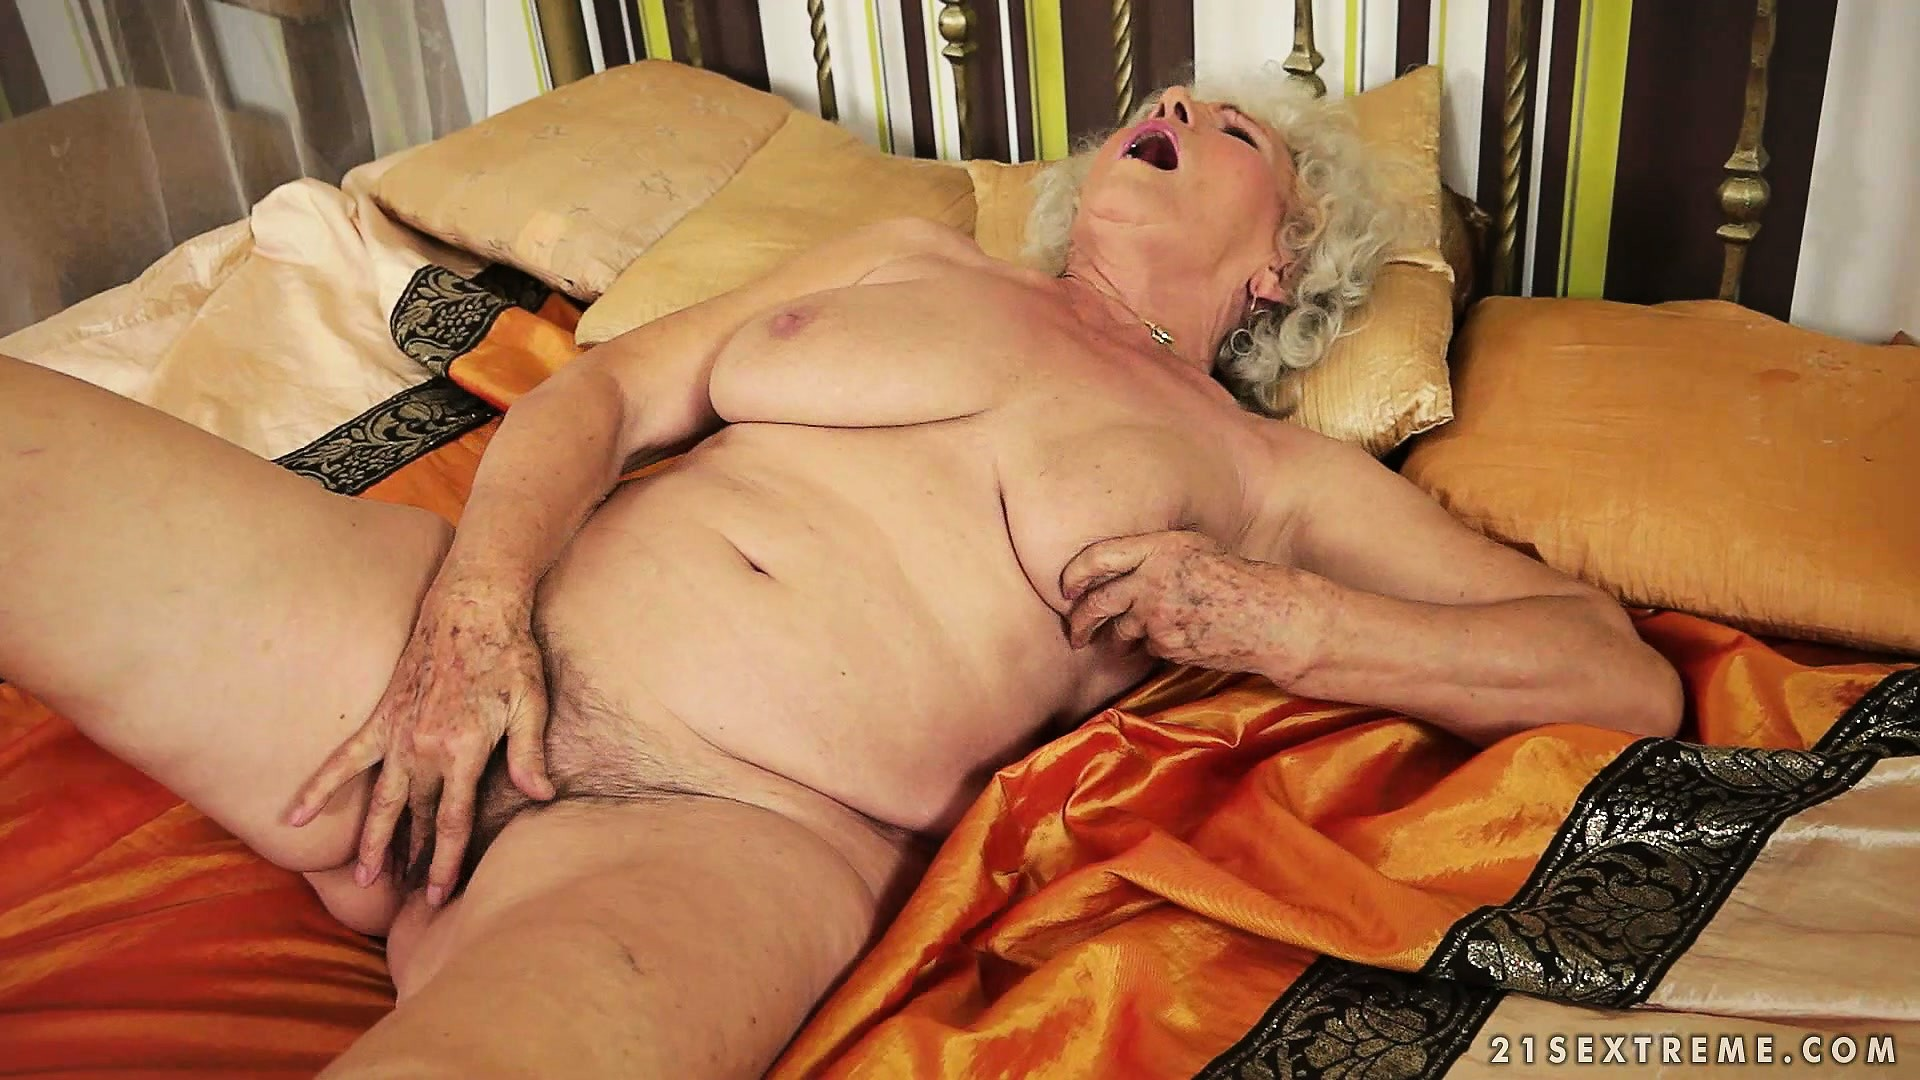 Porn Tube of Afternoon Delight With Plumper Granny Toying Her Very Bushy Bush